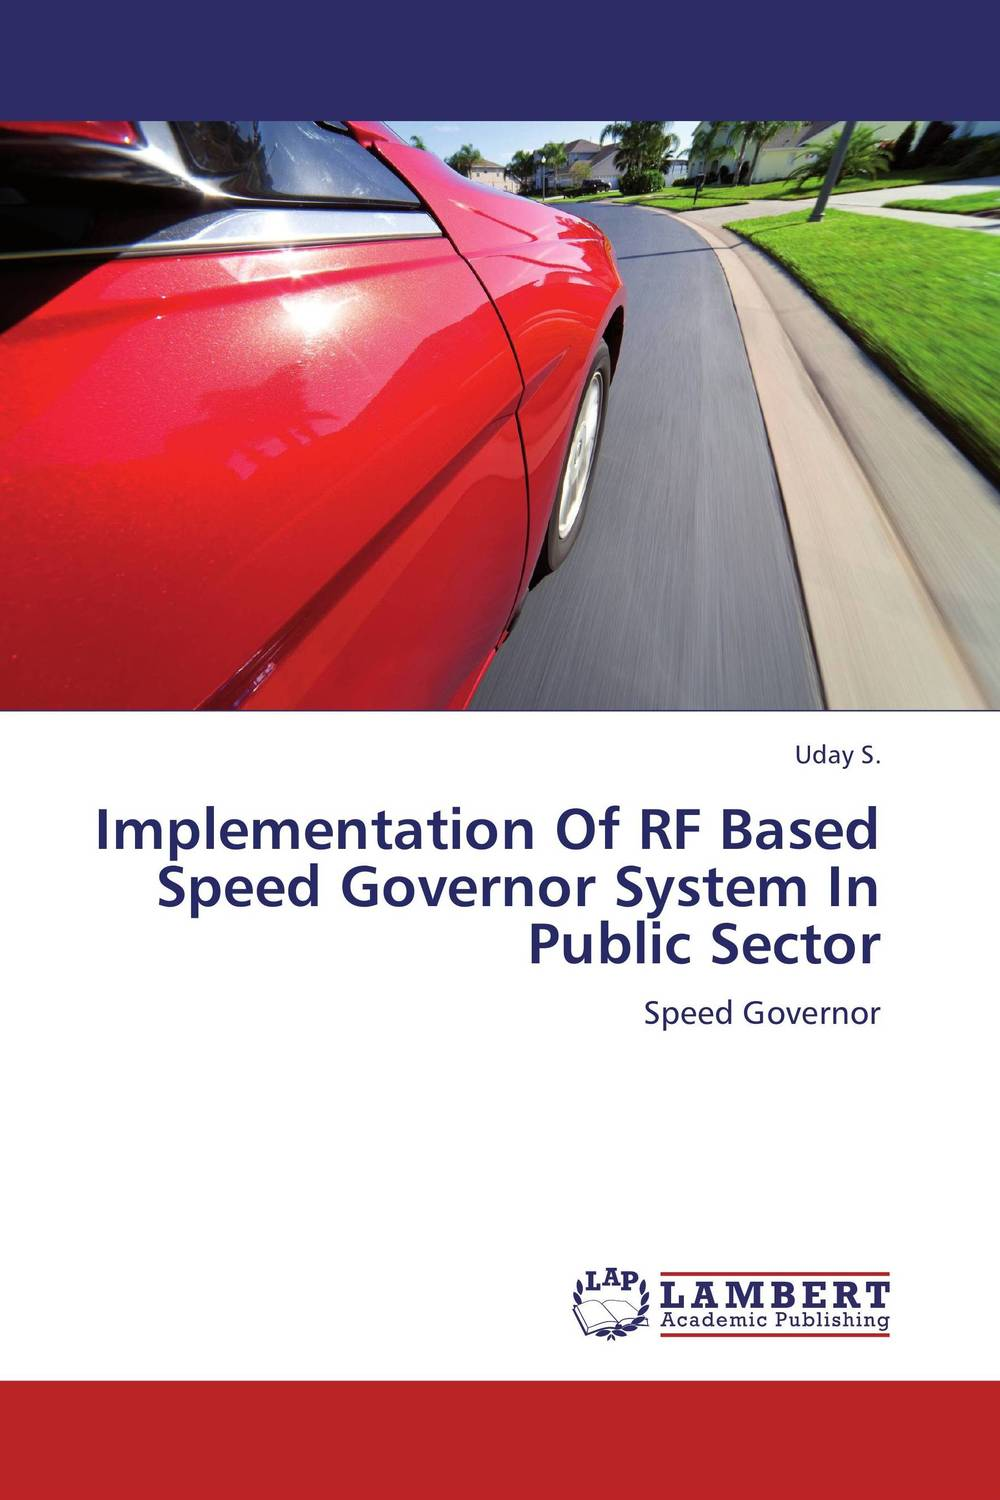 Implementation Of RF Based Speed Governor System In Public Sector the zone